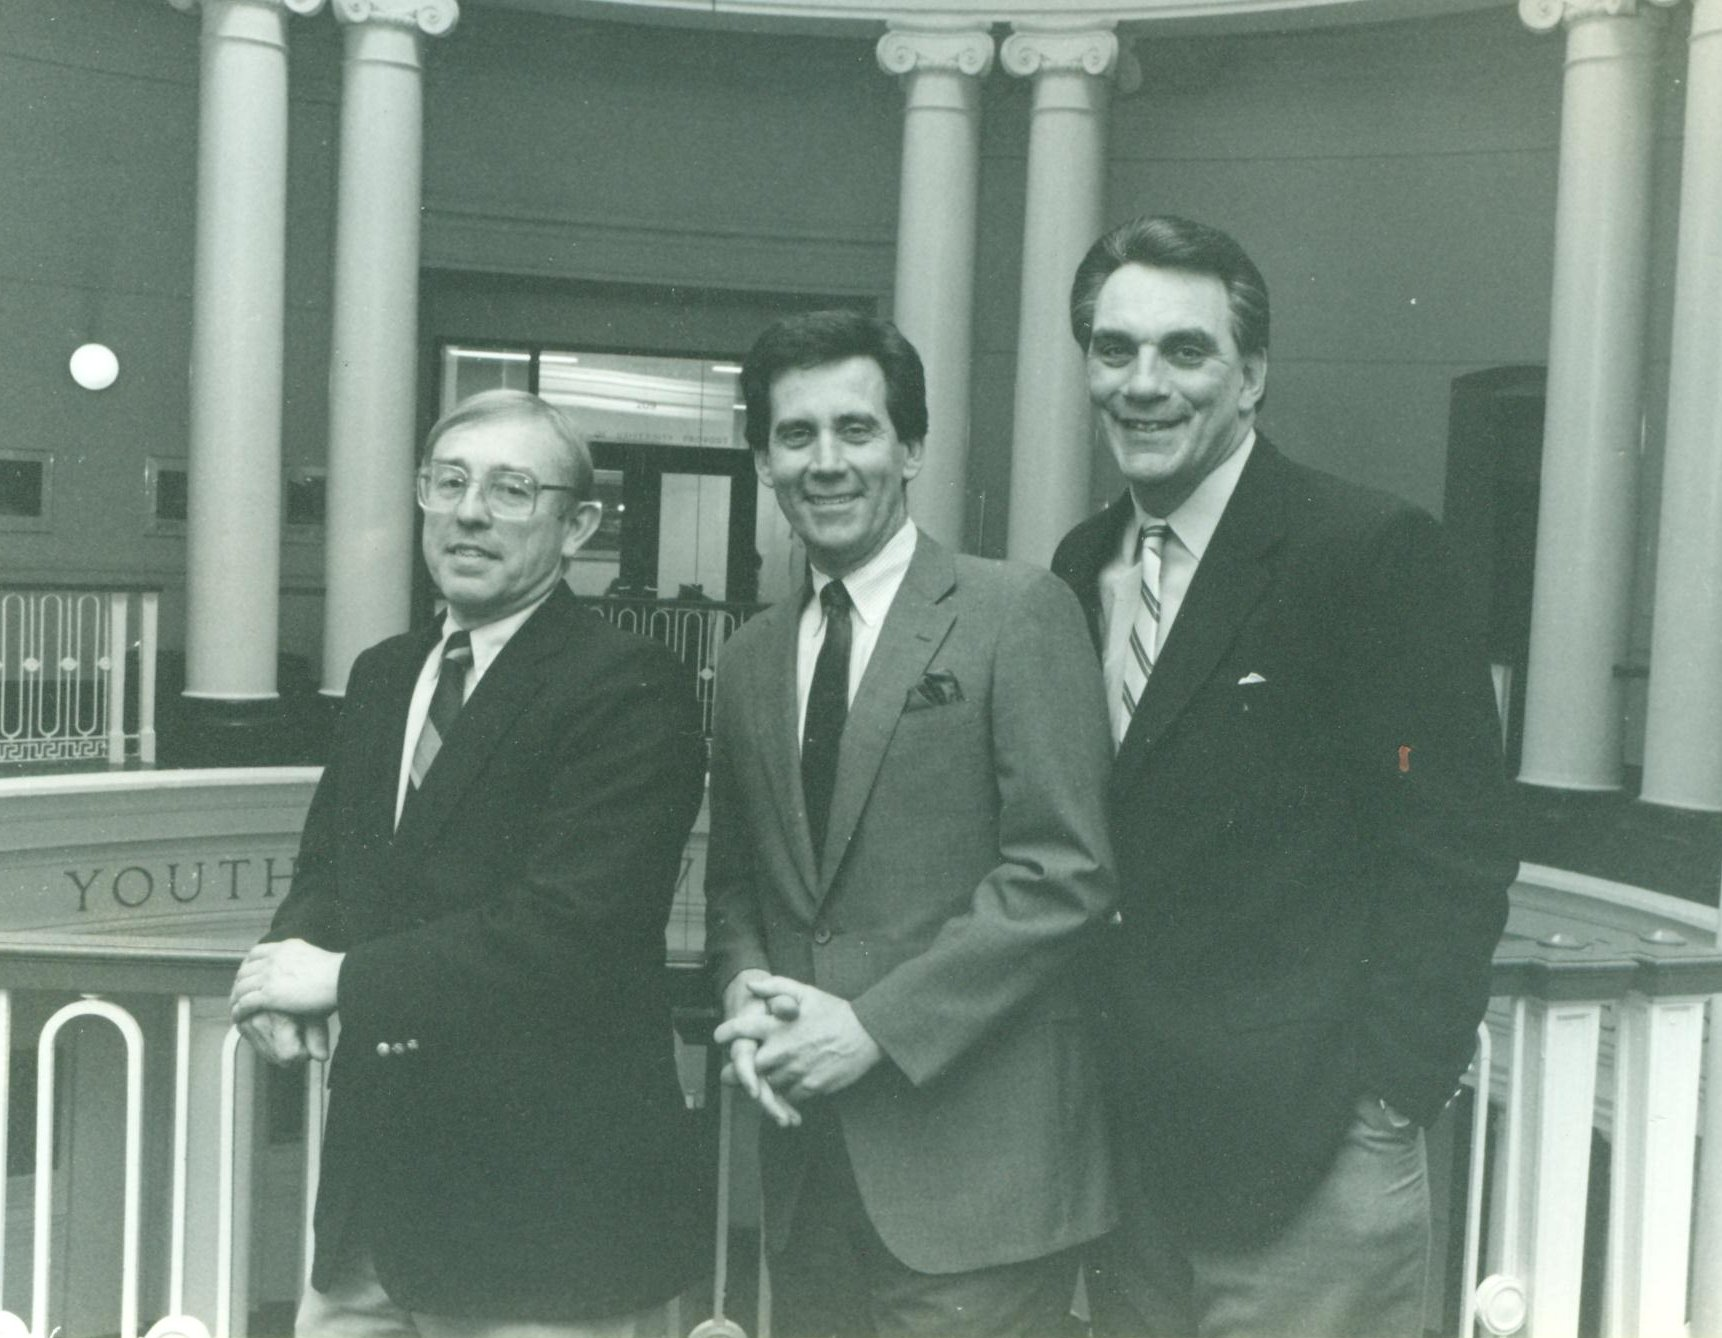 Bruce Bursack, Fred Rhodes and Denny Golden posing in Grawemeyer Hall